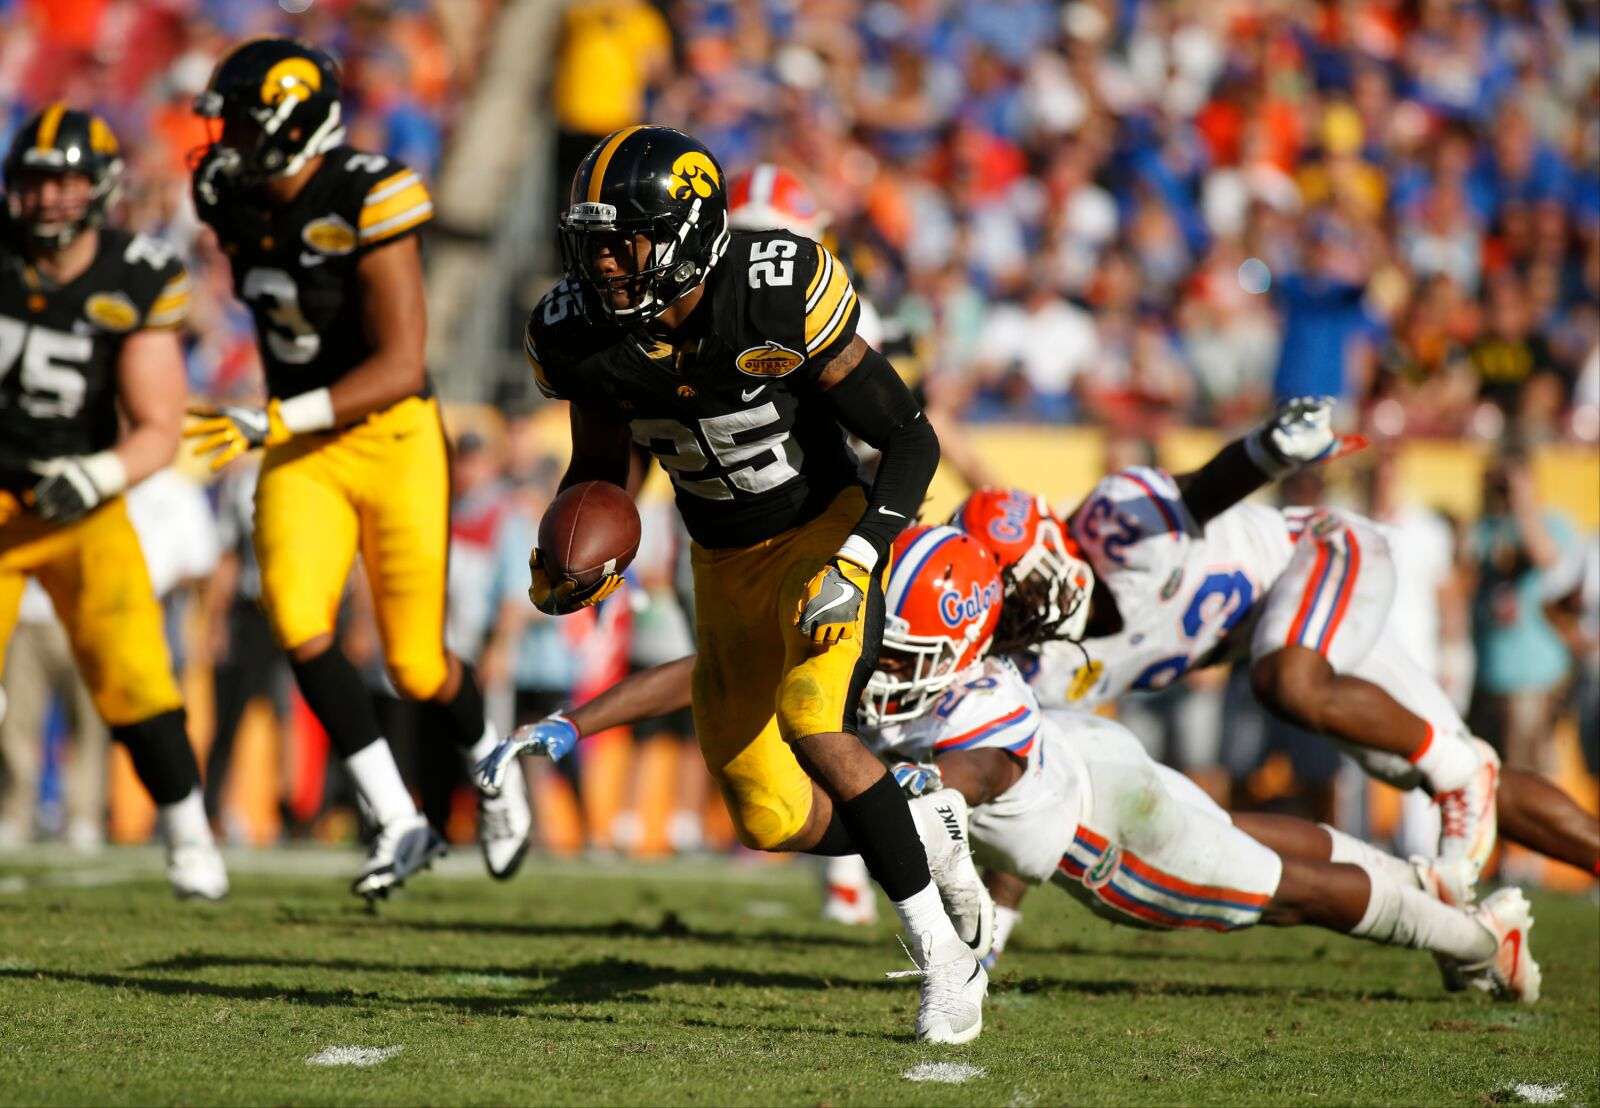 Iowa Football: Point spread picks and rooting interests in Week 0